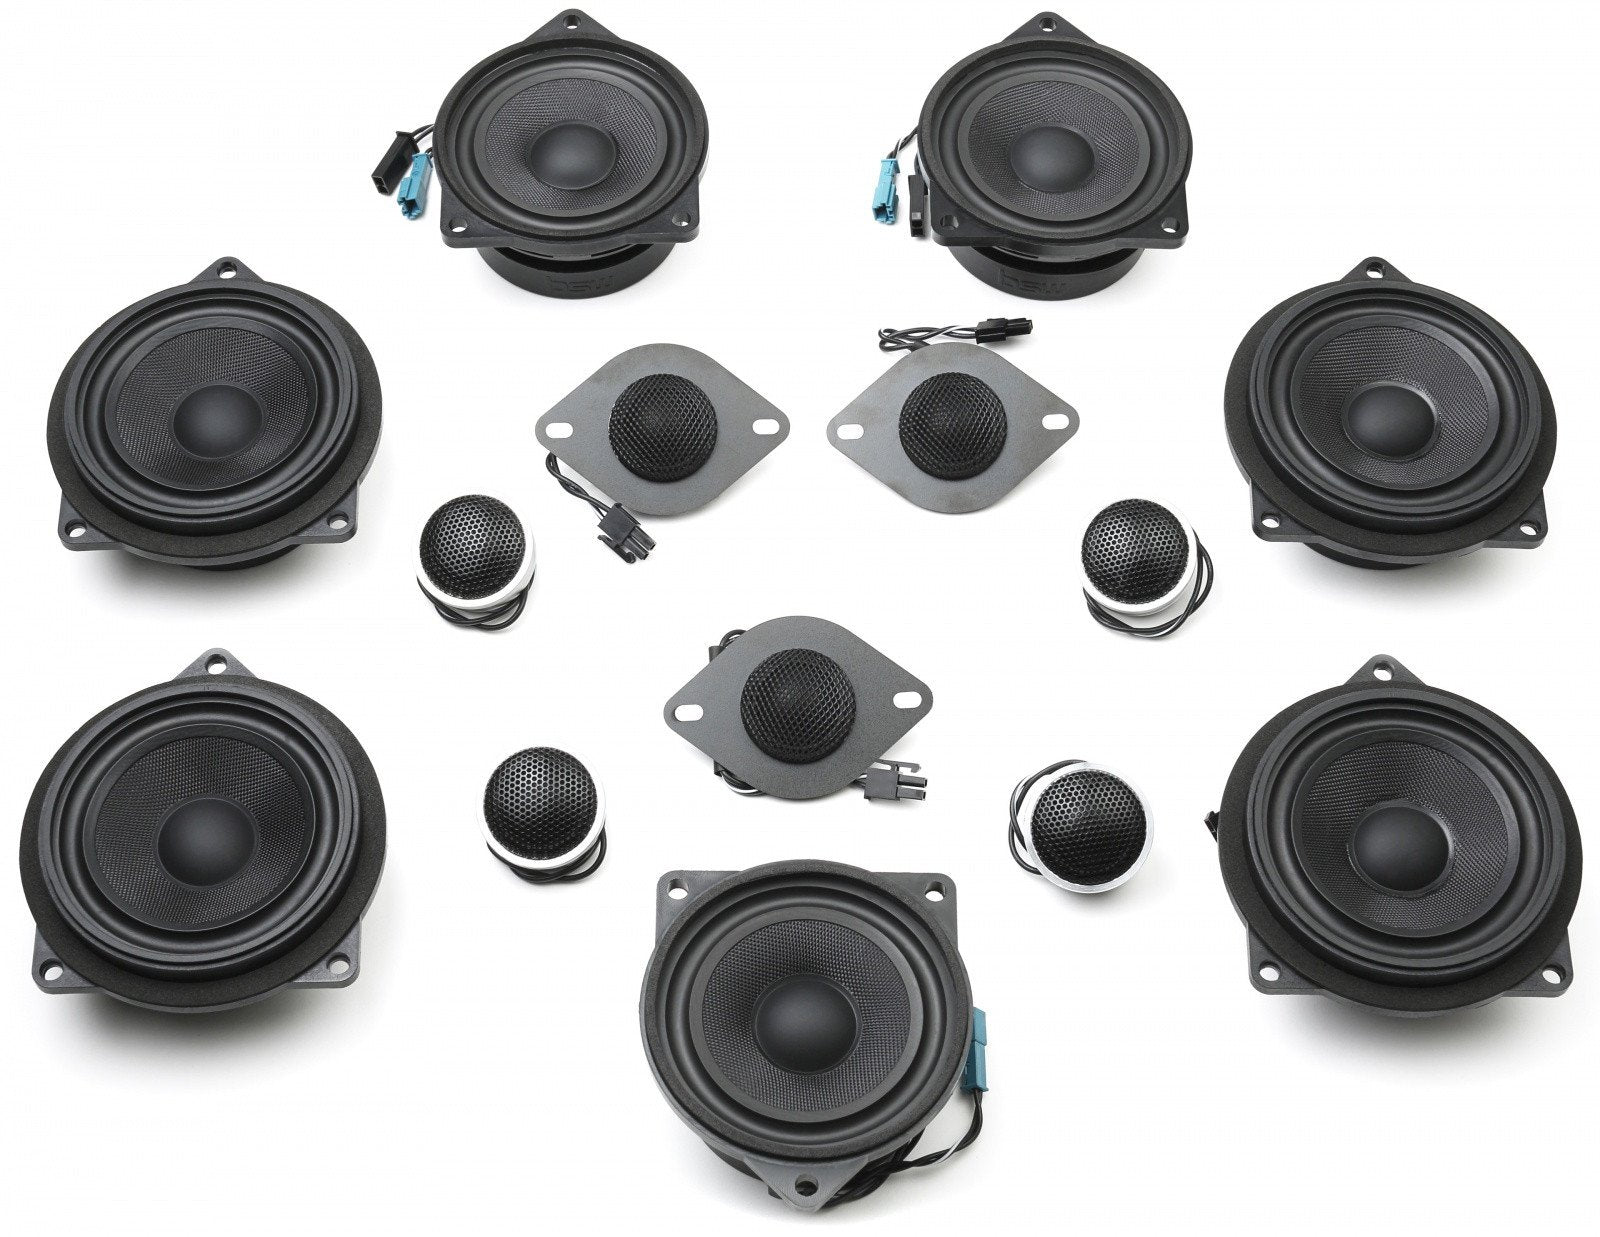 Bavsound Speaker Upgrade G20 3 Series with Harman Kardon